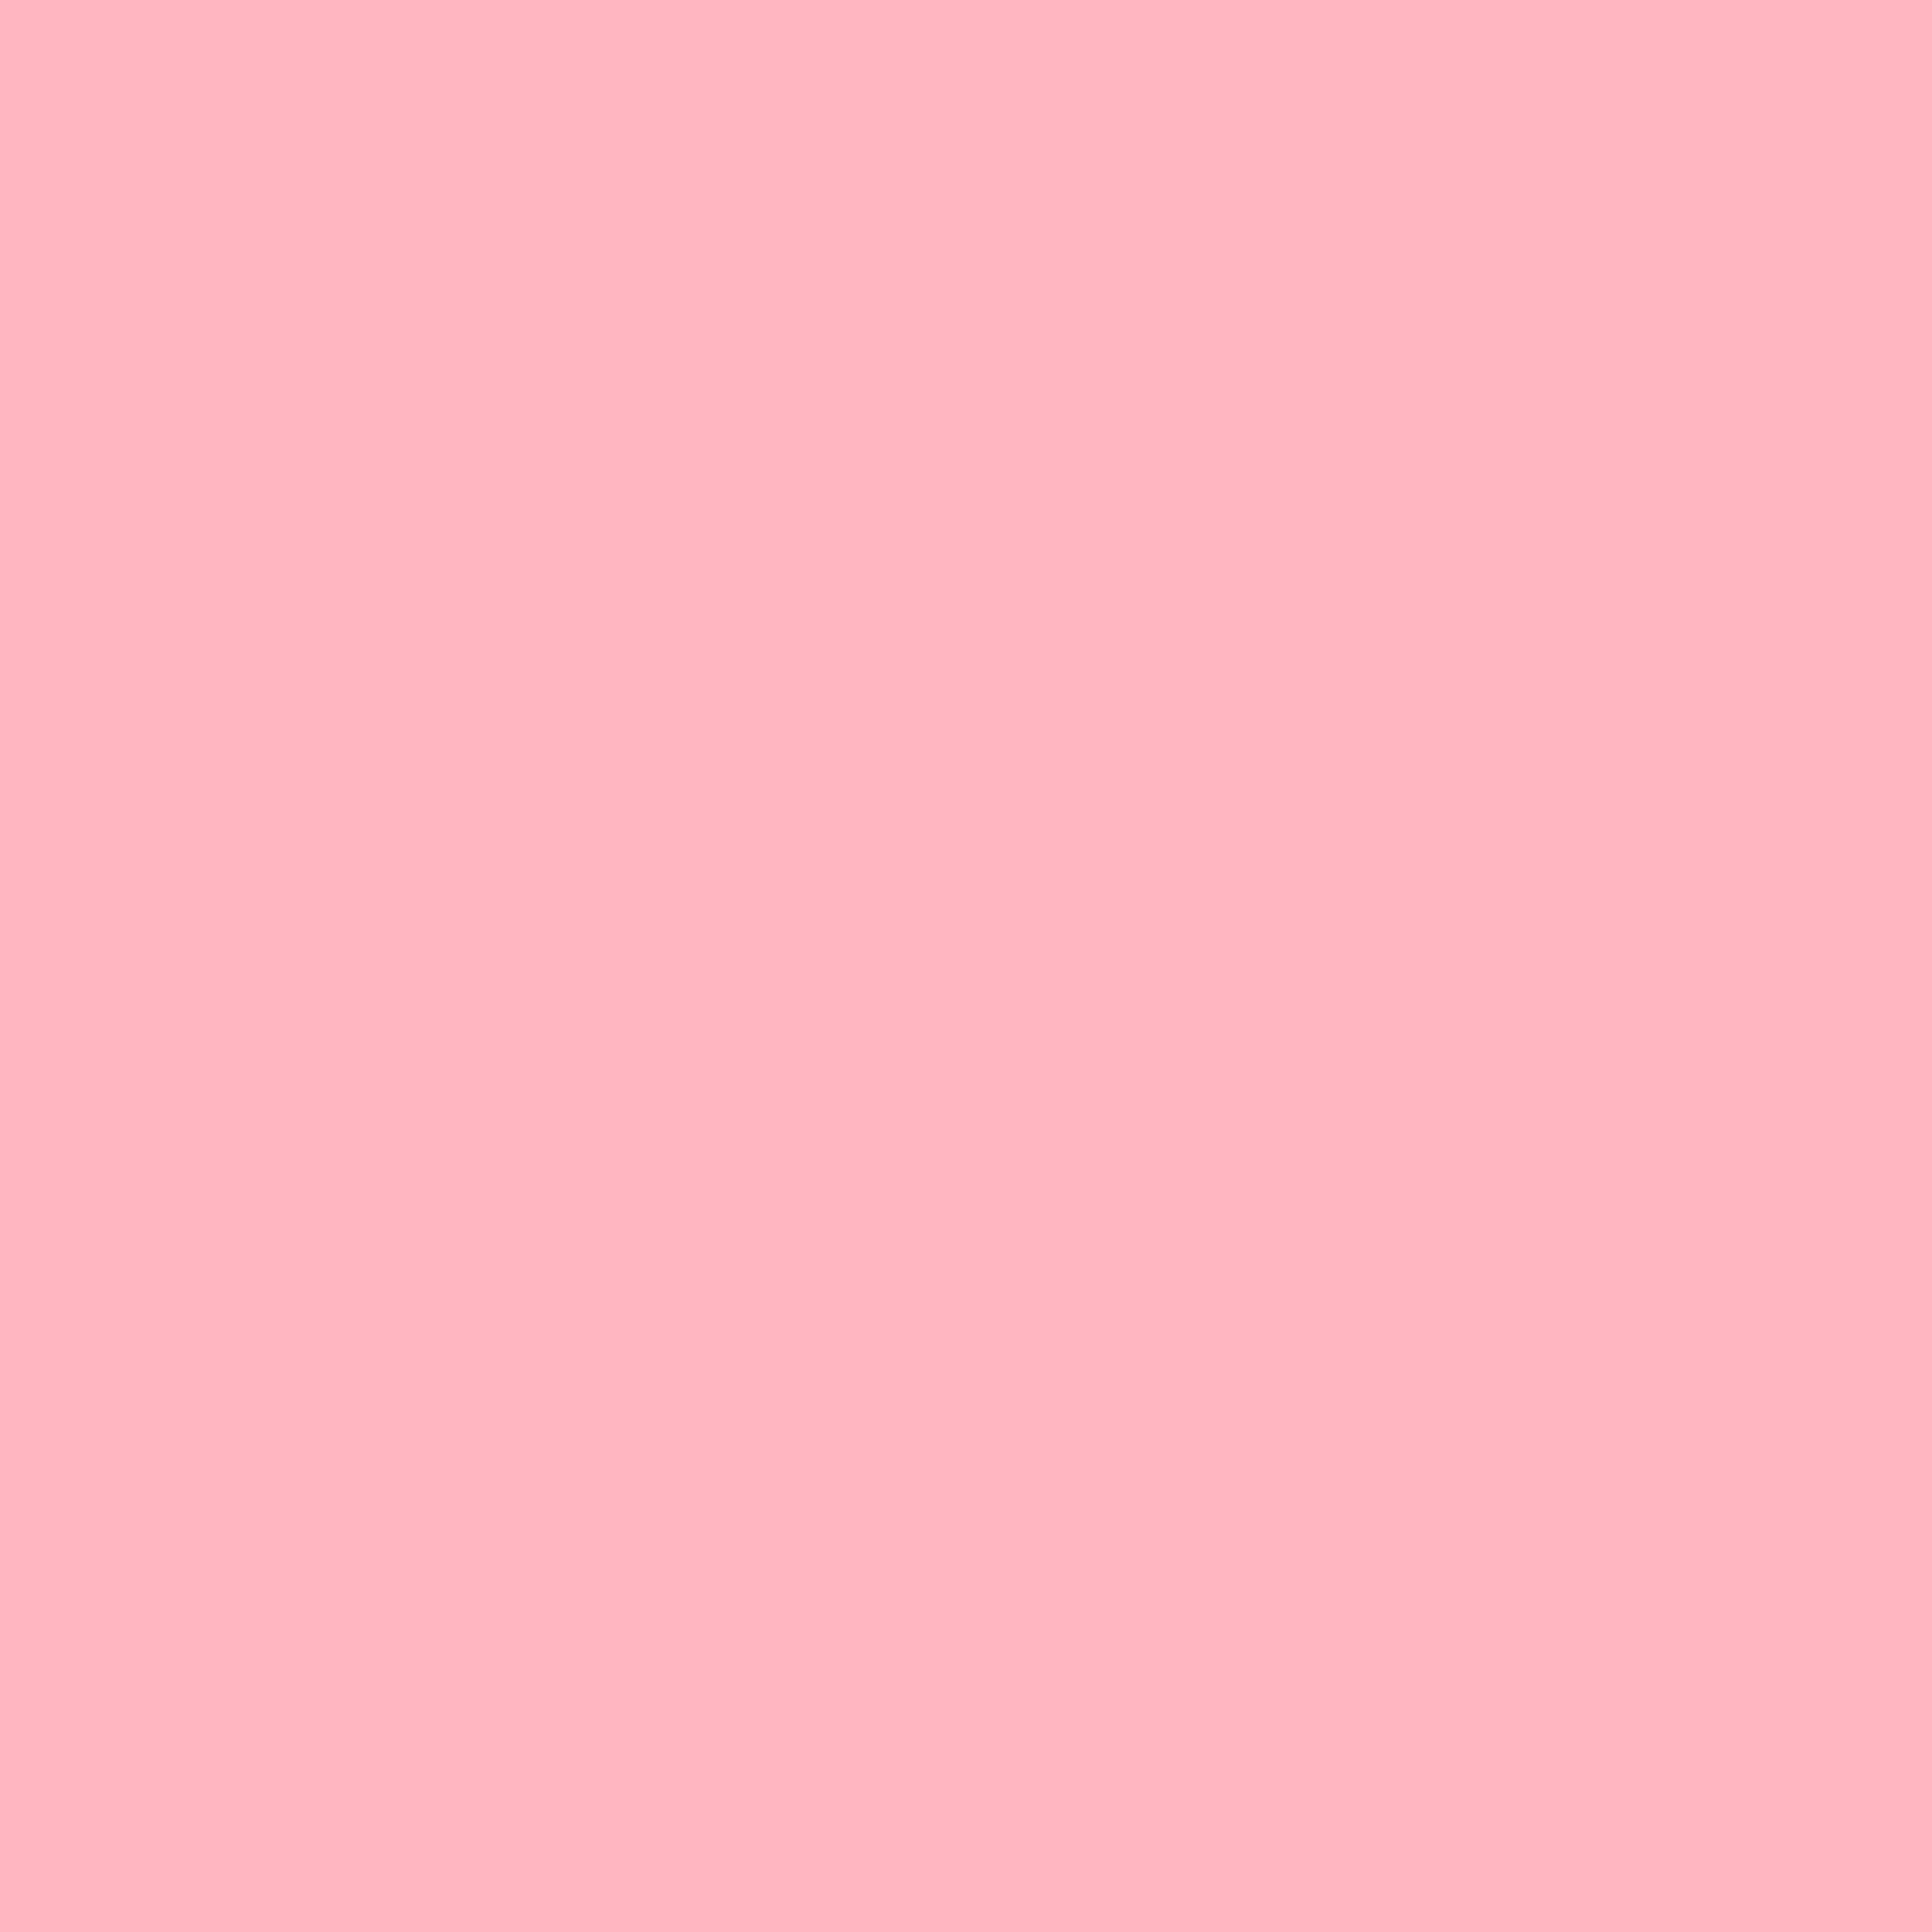 Light Pink Solid Color Backgrounds Images Pictures   Becuo 2048x2048